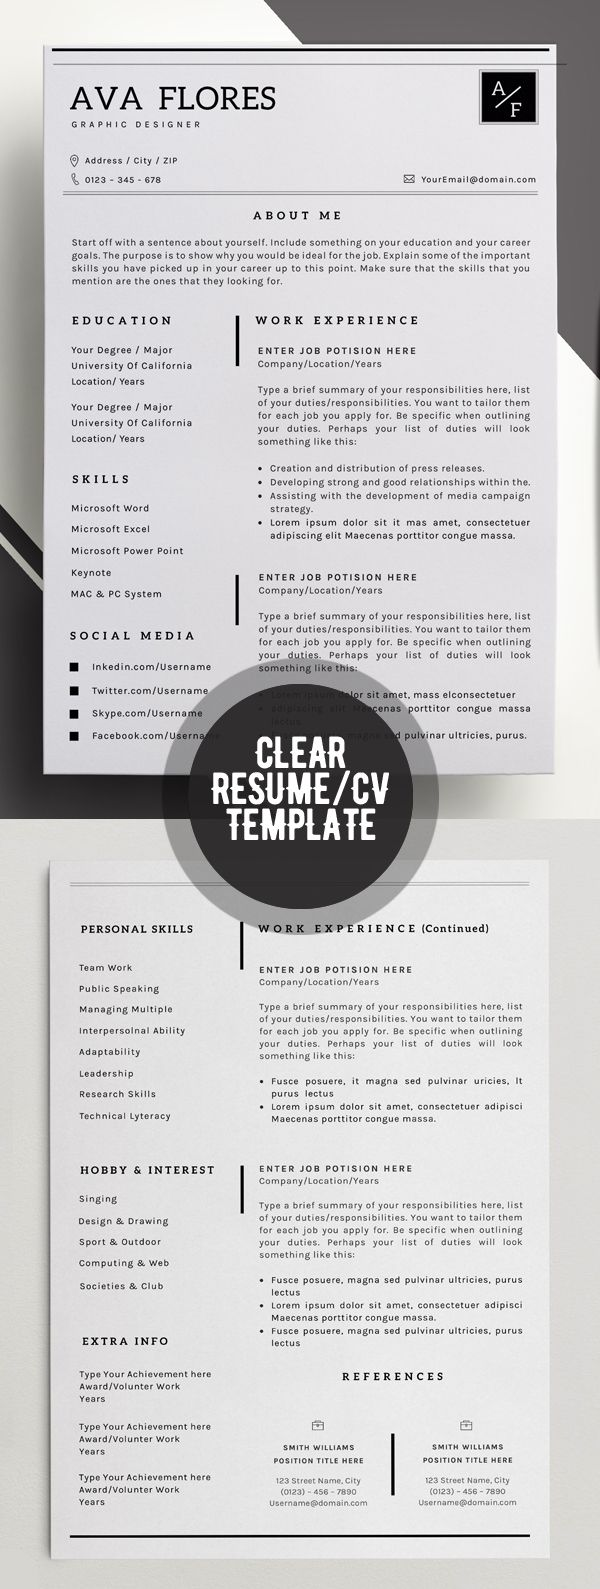 1000 images about biodata for marriage samples on pinterest - 13 Templates De Cv Para Creativos